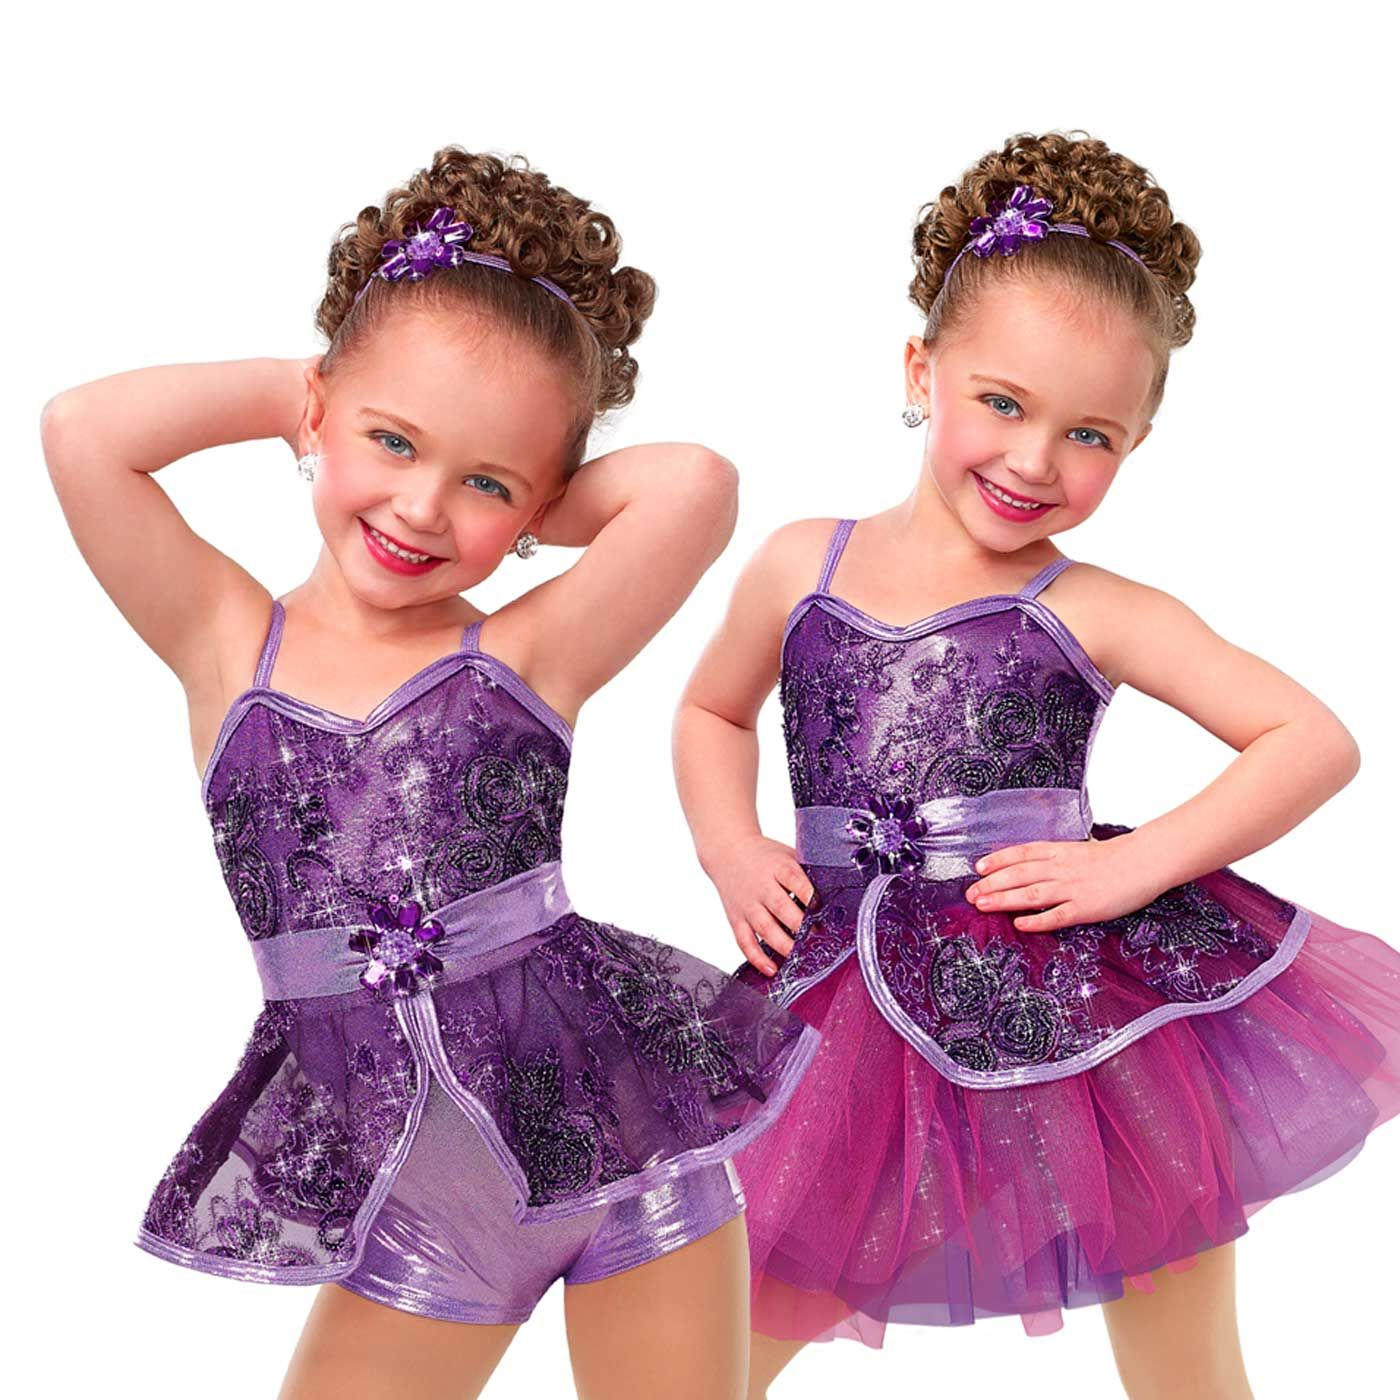 Curtain Call Full Of Wishes 2 In 1 Dance Costumes Girls